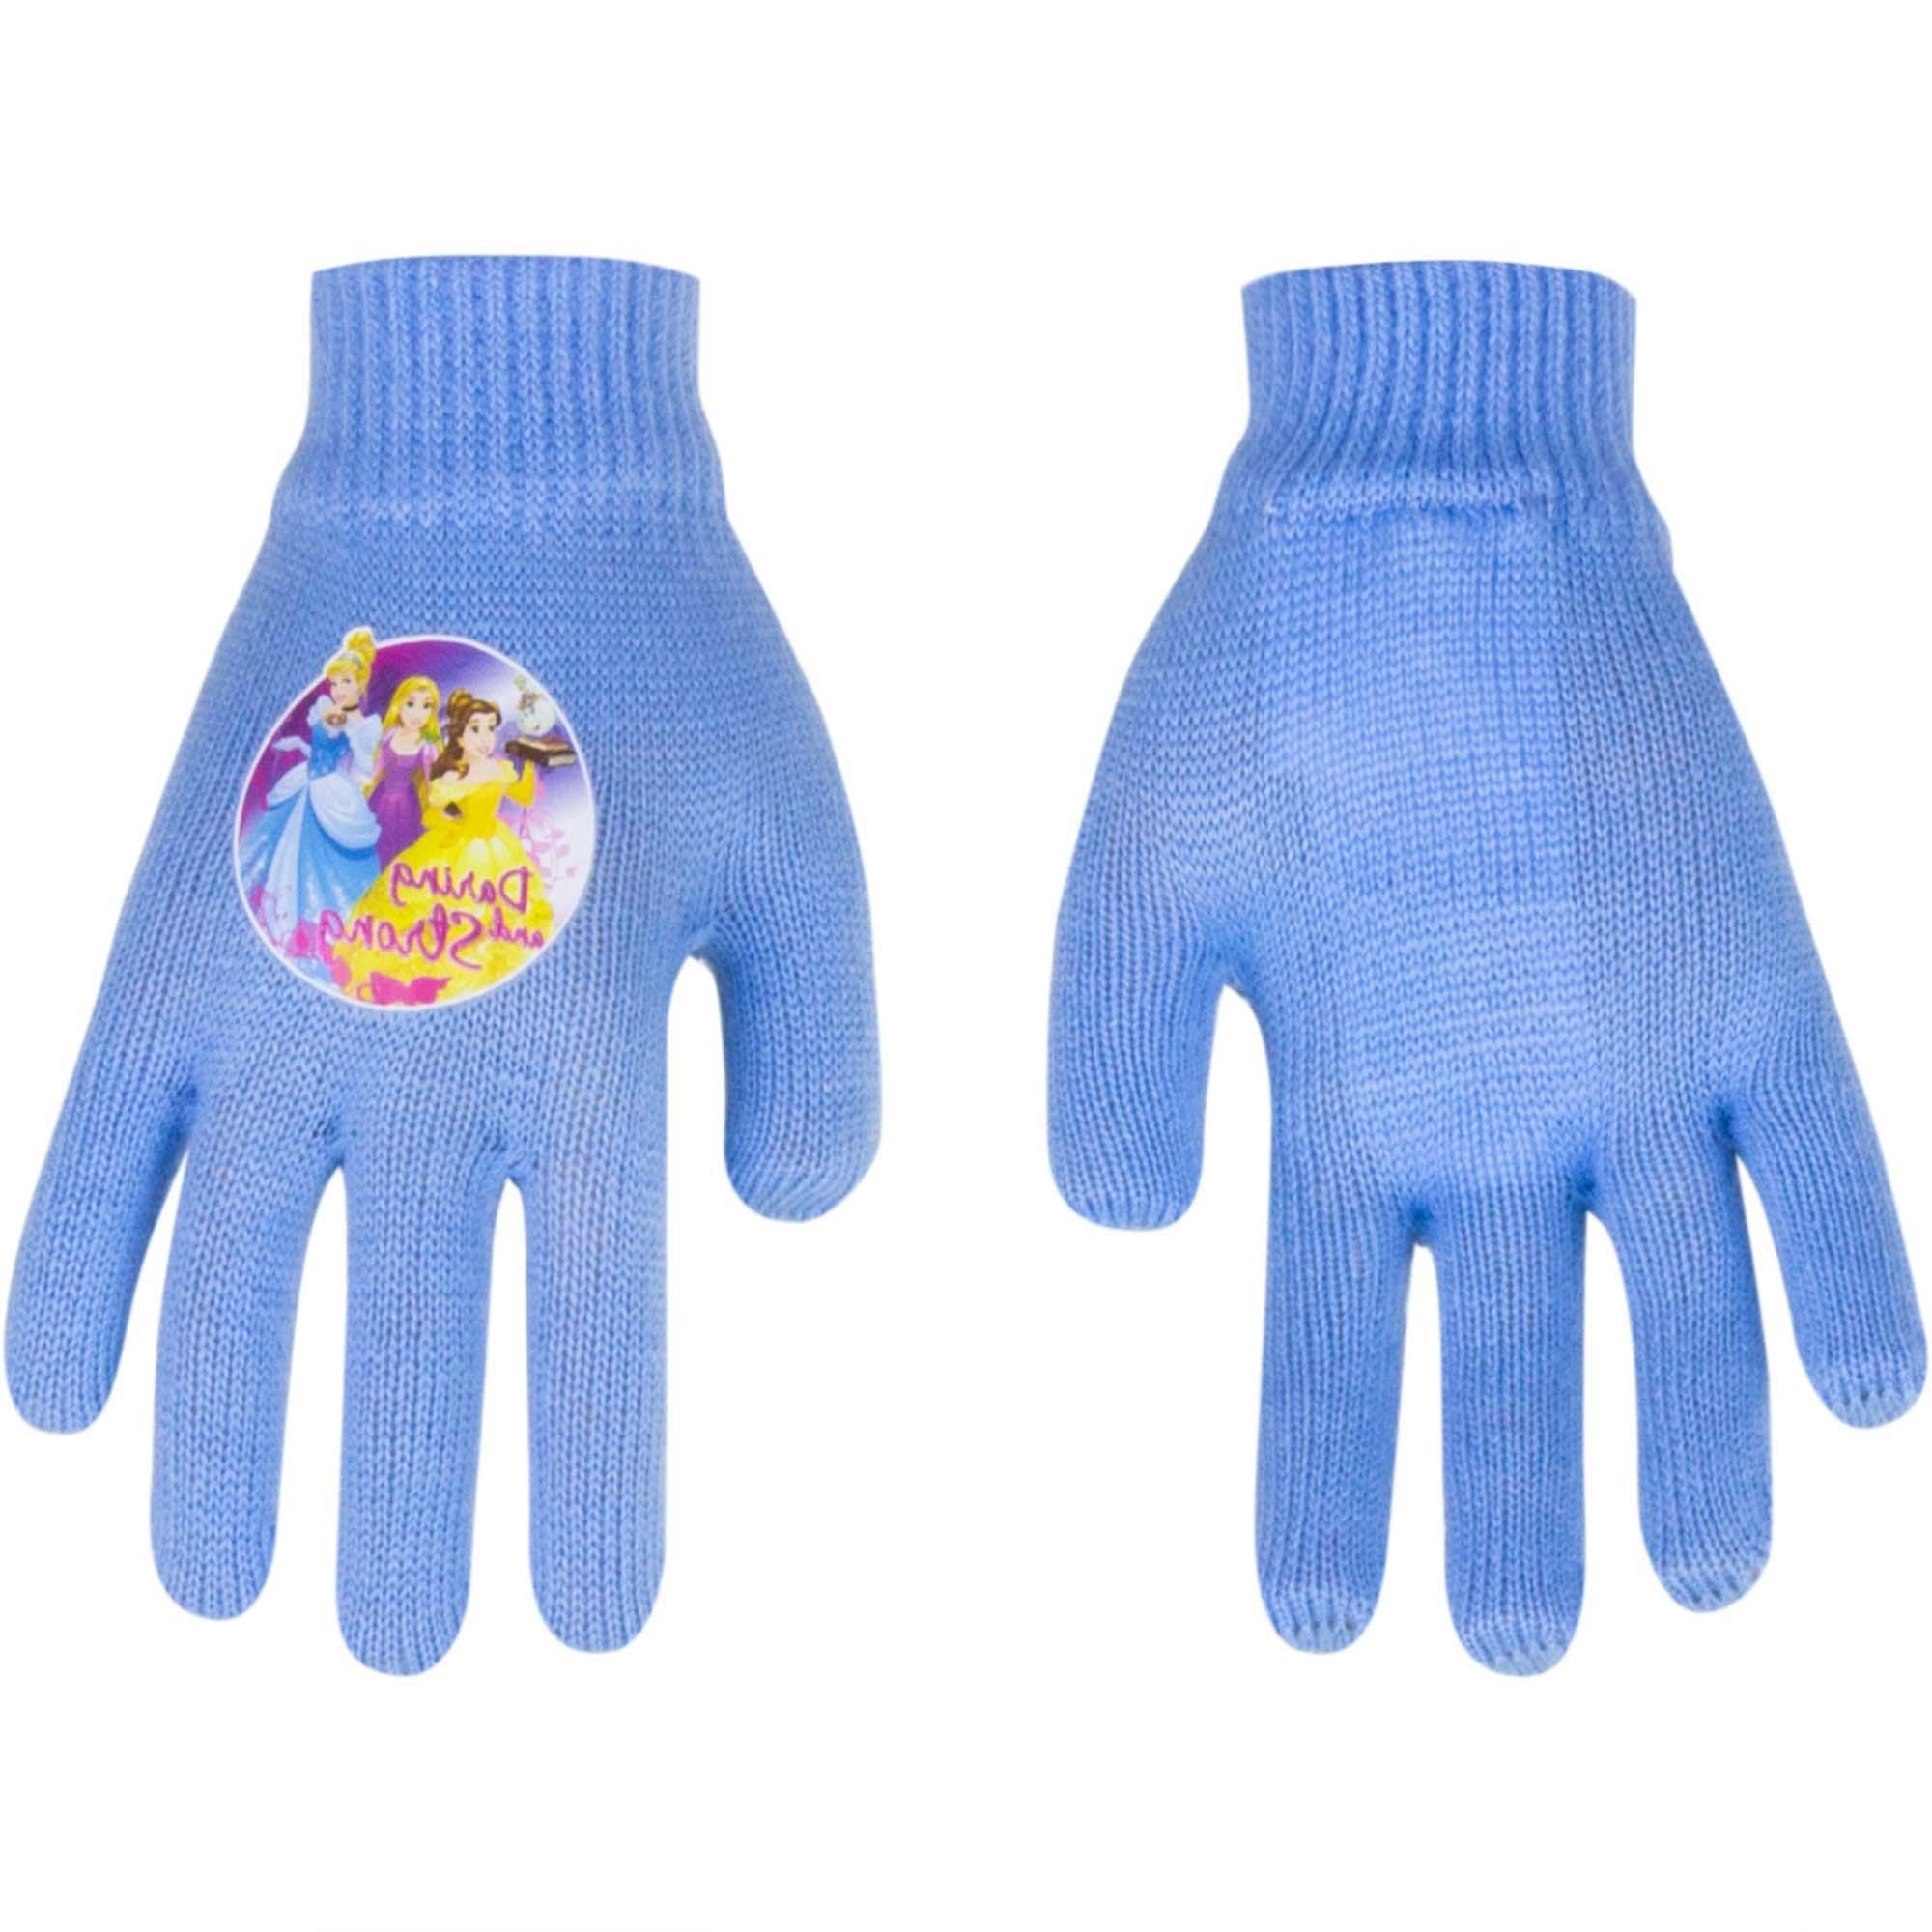 Princess gloves Magic Light Blue (Age: 2-5 years old)